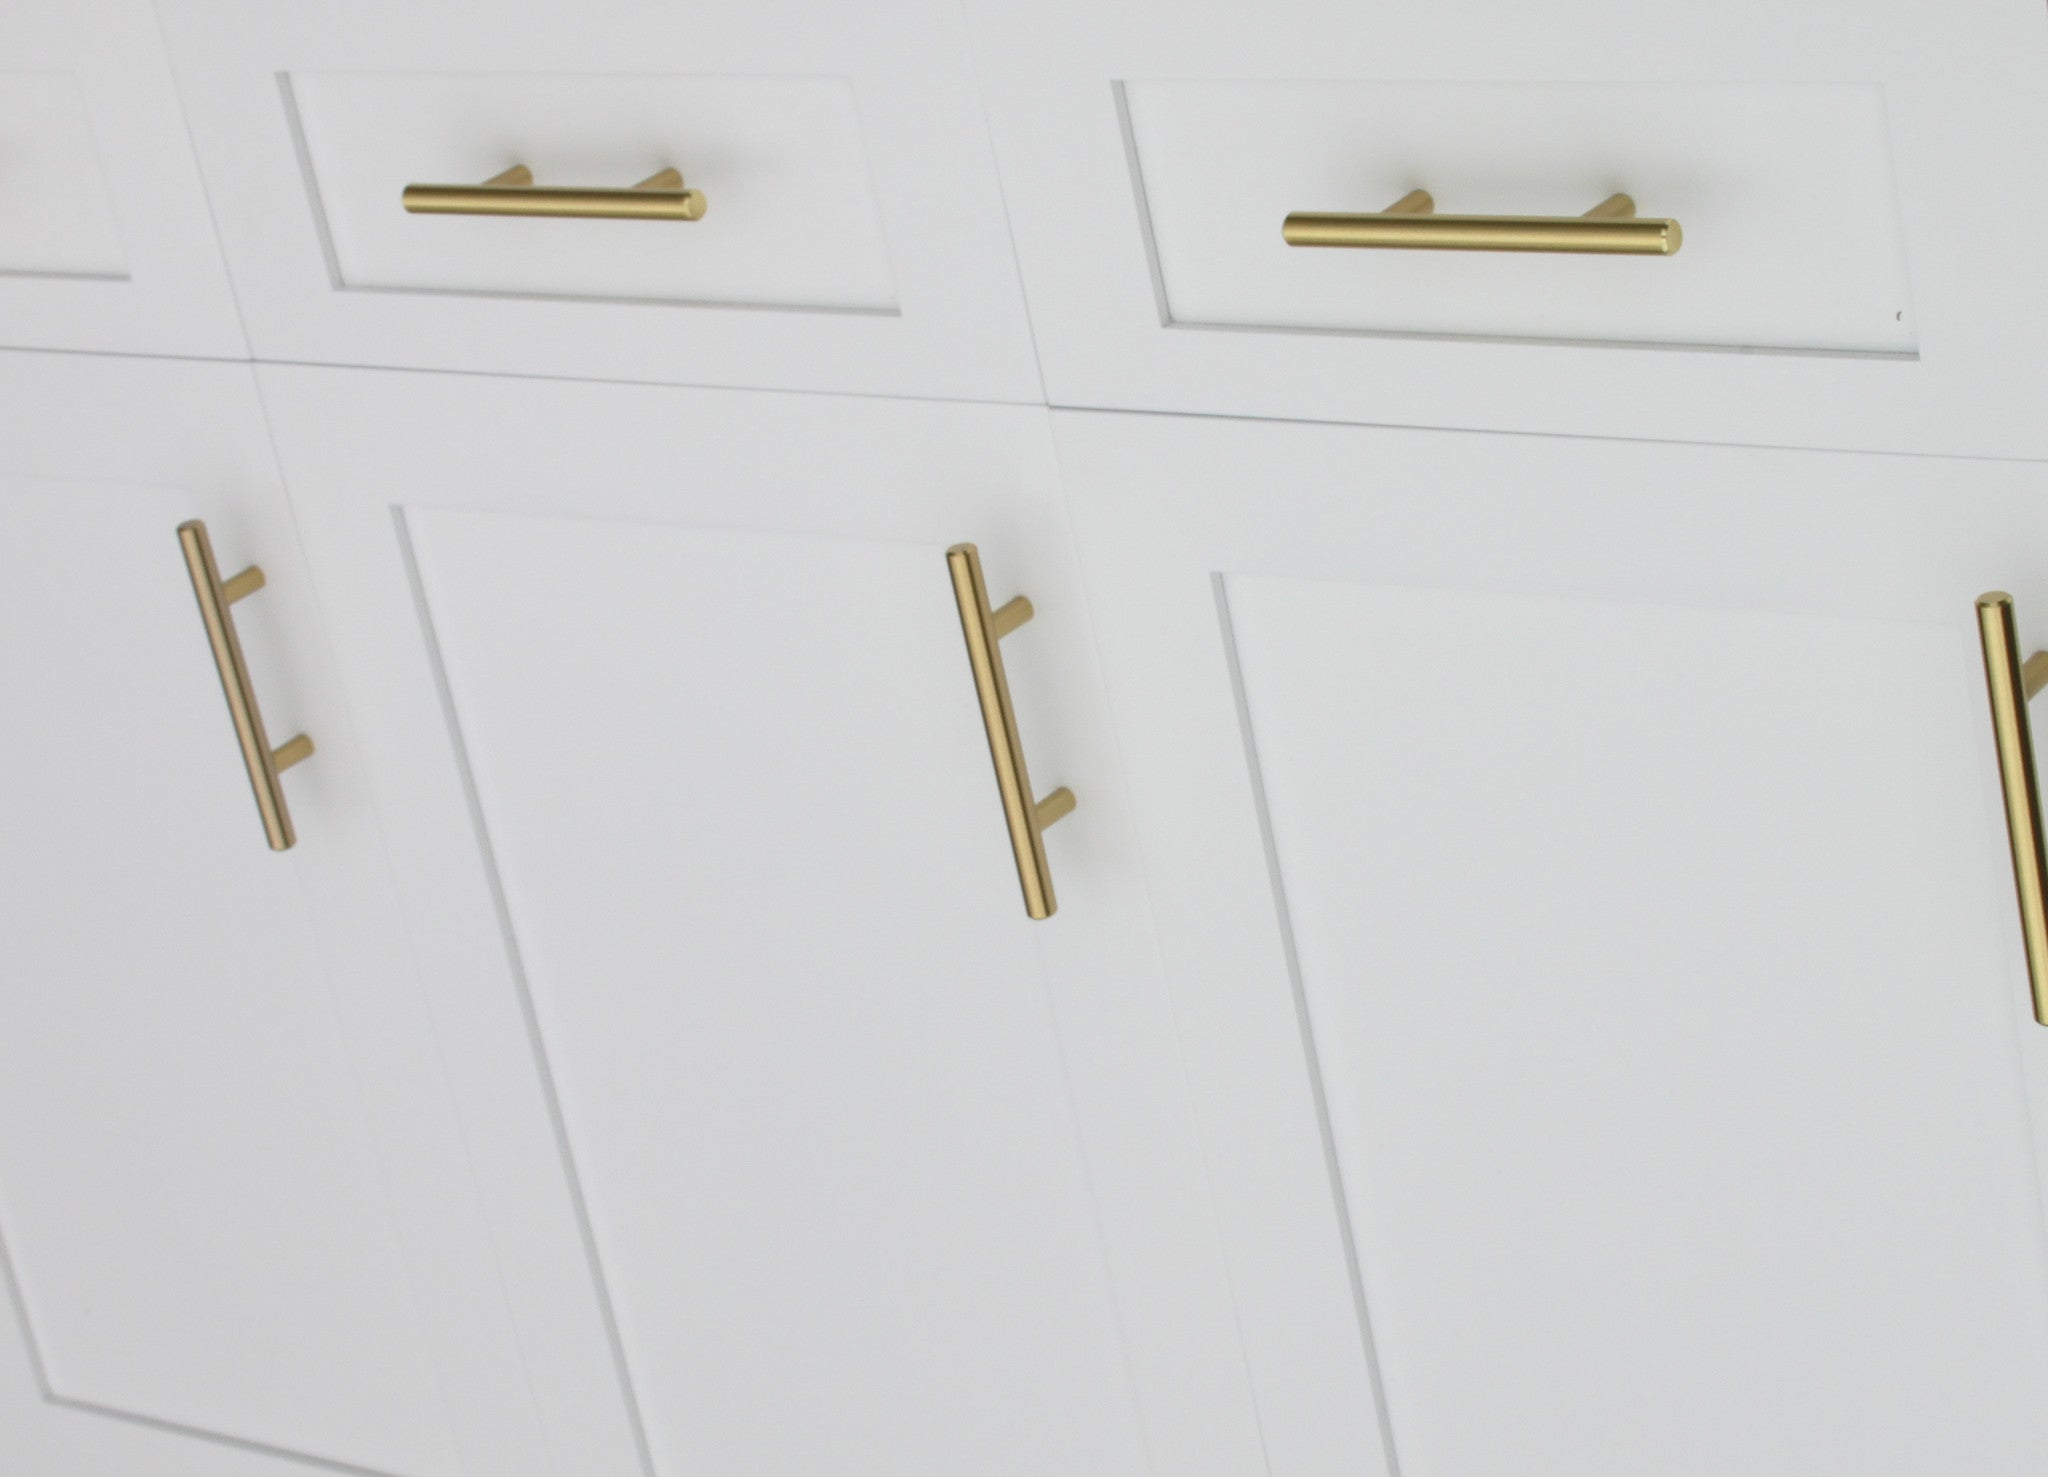 Satin brass cabinet hardware euro style bar handle pull 128mm hole centers 7 3 4 overall length